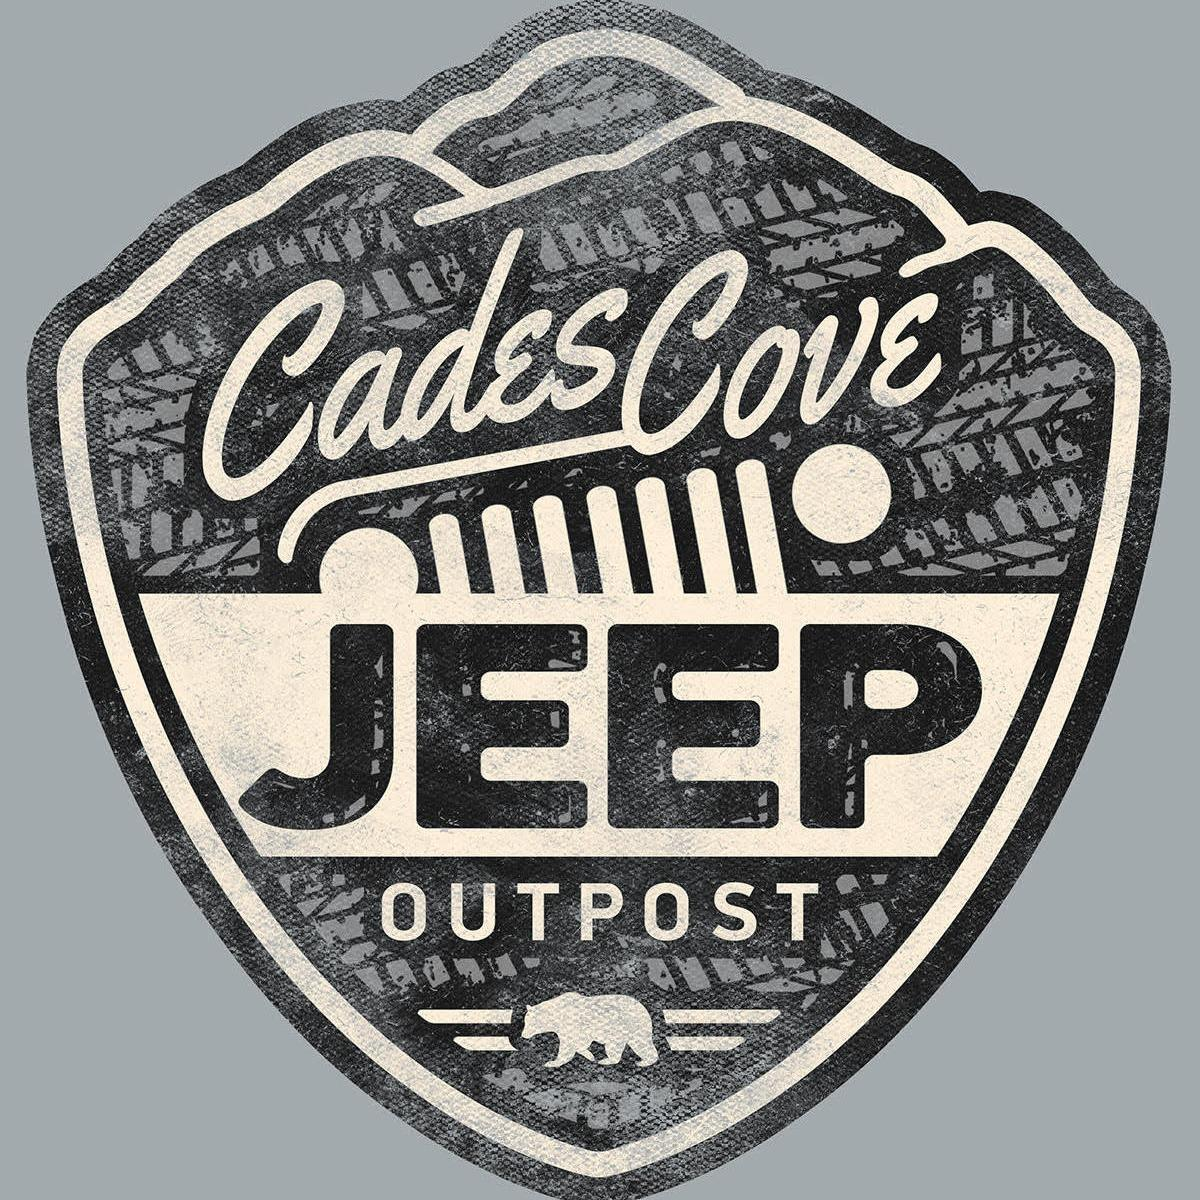 Cades Cove Jeep Outpost - Townsend, TN - Apparel Stores